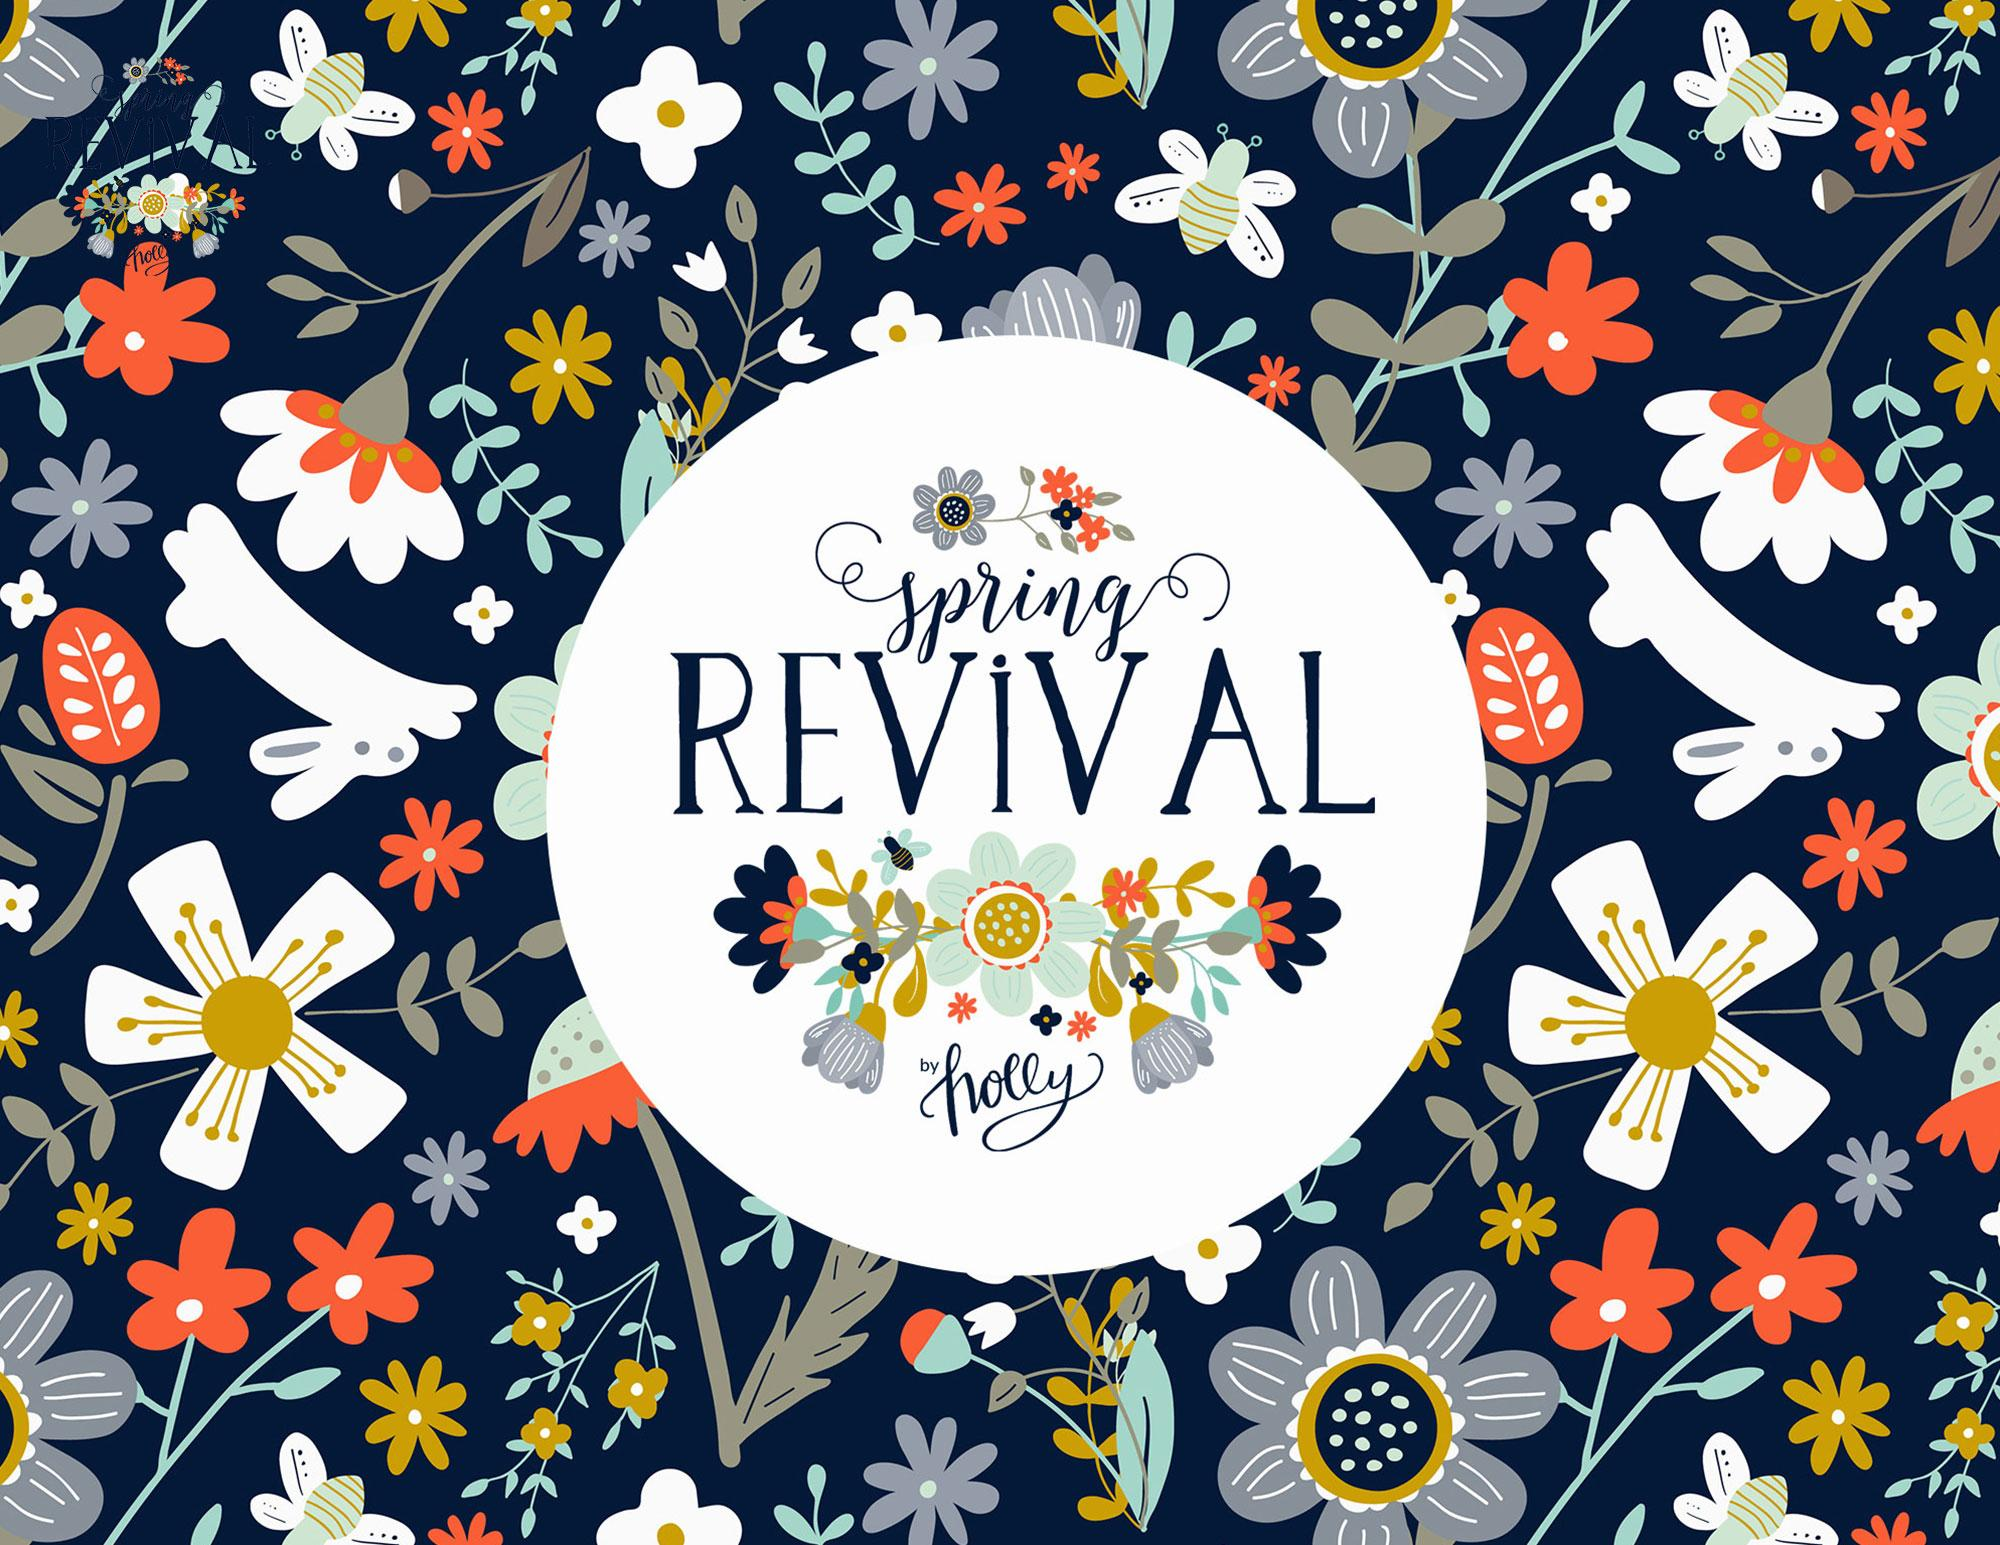 Spring Revival - image 1 - student project